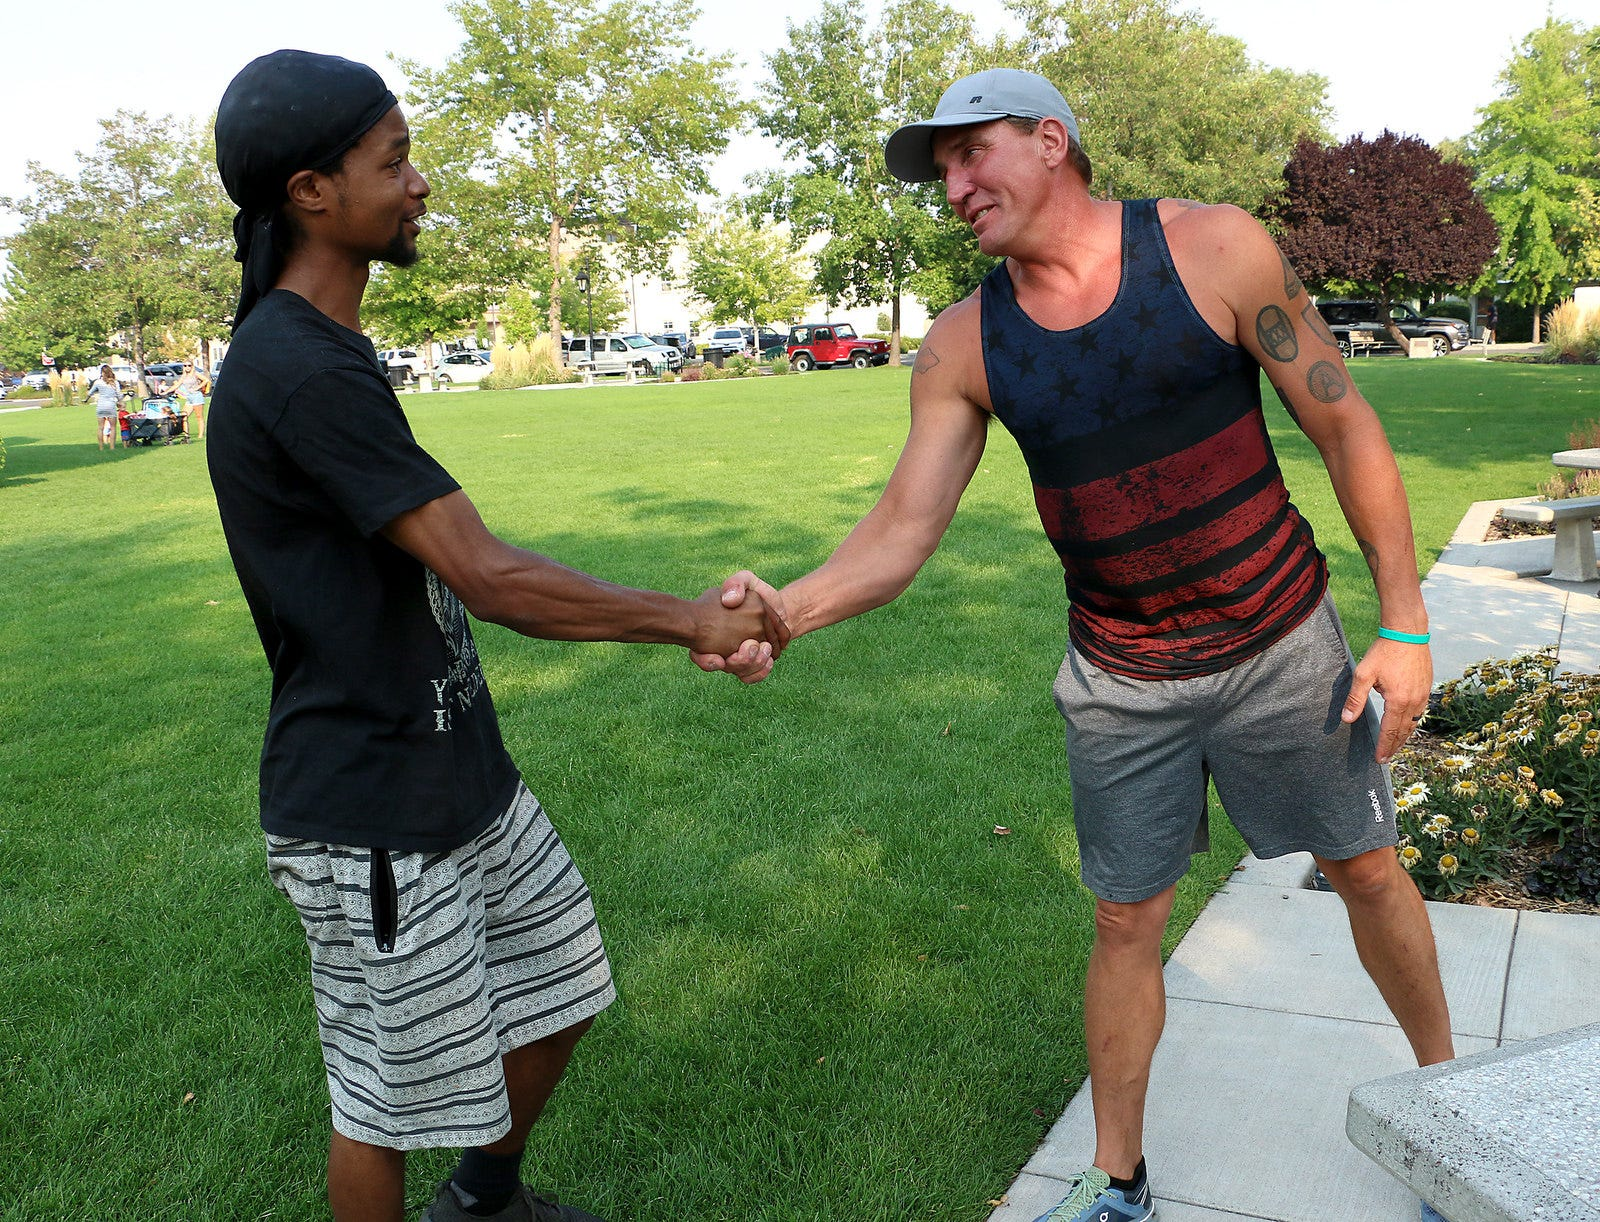 Jerome Silas, left, and Brian Johnson shake hands while meeting in Minden Park in Minden on Aug. 25, 2020. A striking image was taken of Silas and Johnson during a Black Lives Matter protest that attracted about 50 supporters and more than 1,500 counter-protesters in Minden Aug. 8. The two fathers from Northern Nevada were from opposite sides of a conflict with the same goal: to protect their community. The RGJ invited them to meet and talk about the experience and the impact that moment, and that day, had on them.